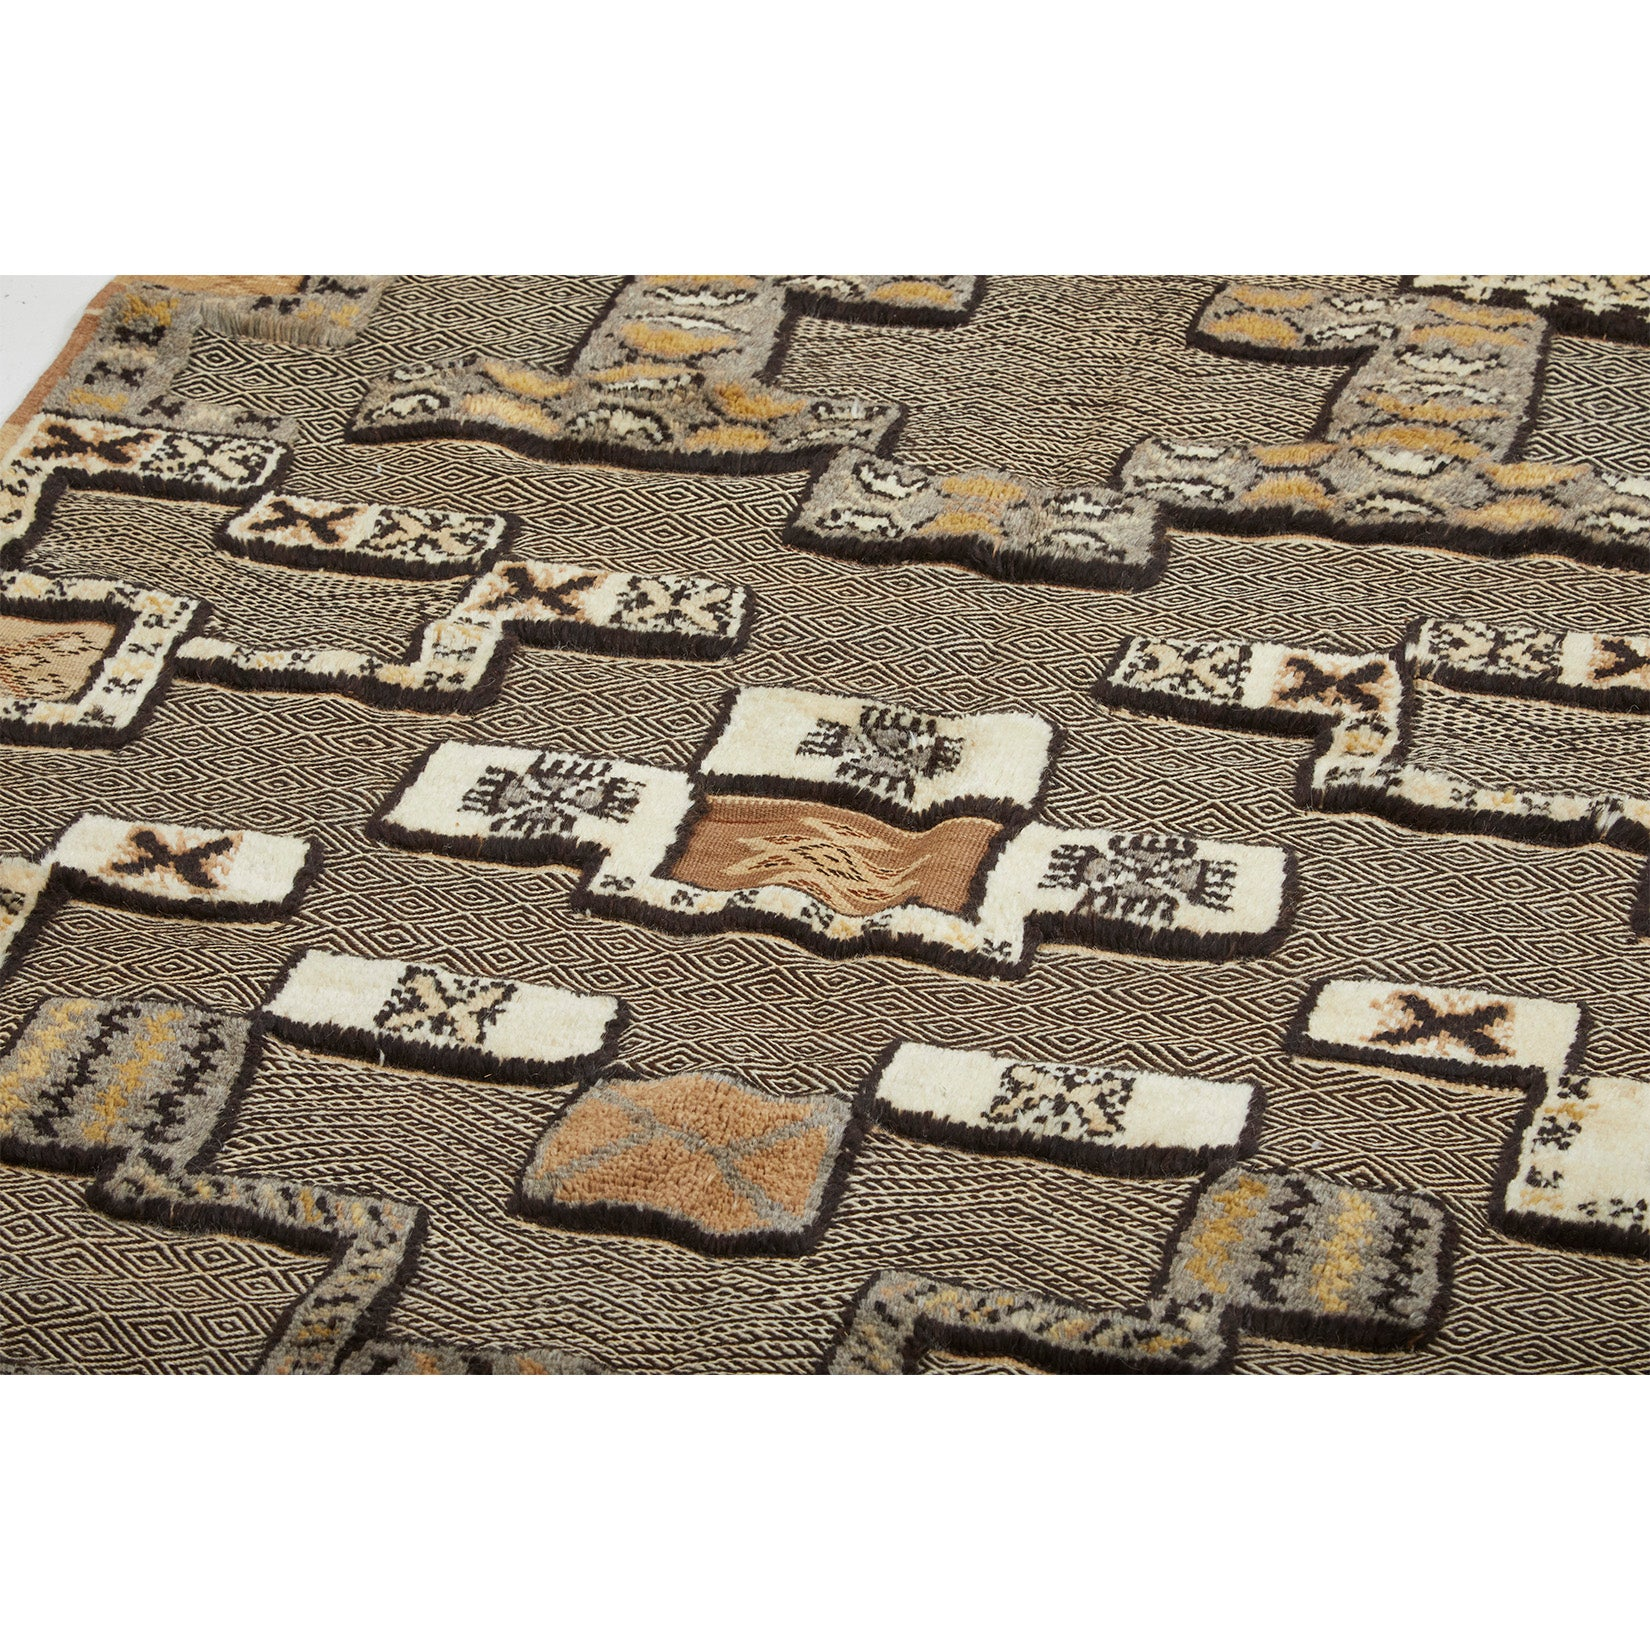 Brown, black, and white tribal berber carpet with both pile and flatweave sections - Kantara | Moroccan Rugs